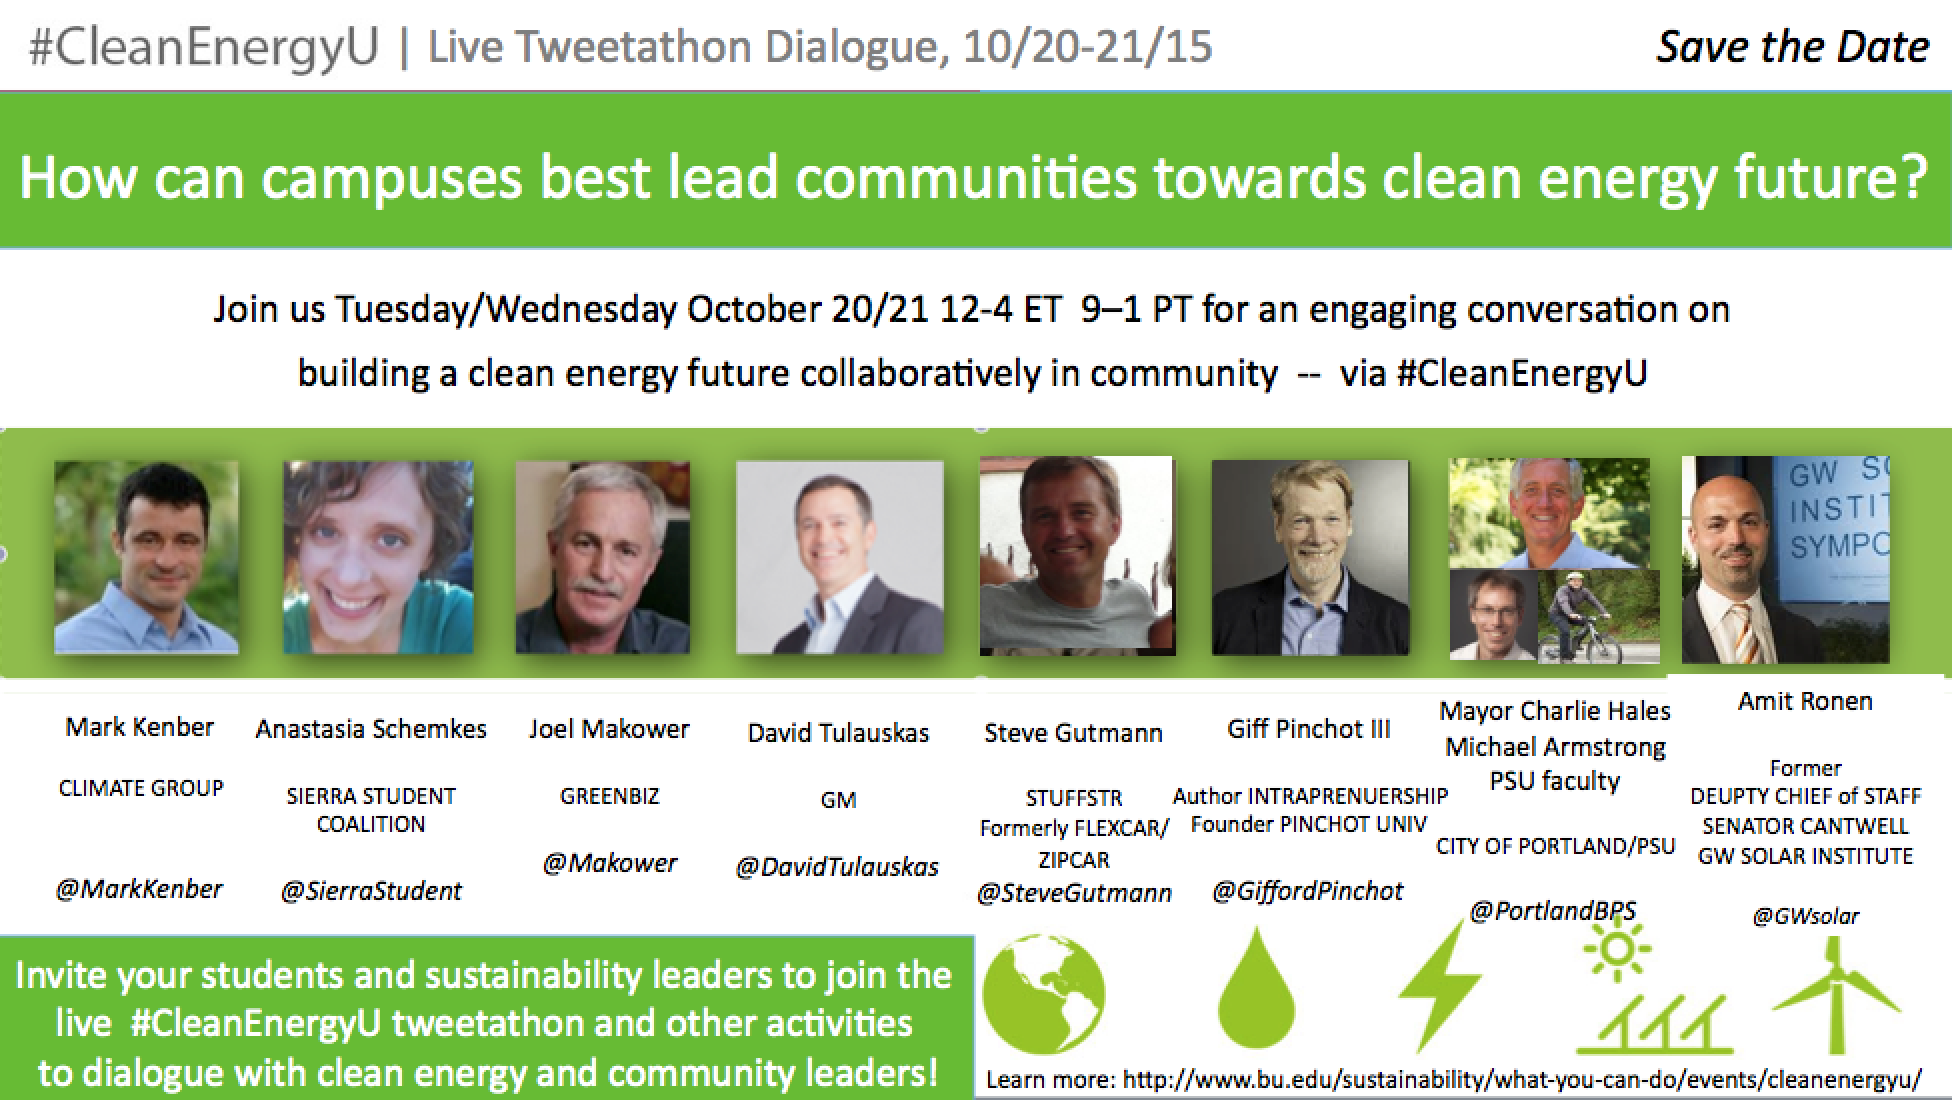 #CleanEnergyU Save the Date Tweetathon Oct 20-21 A